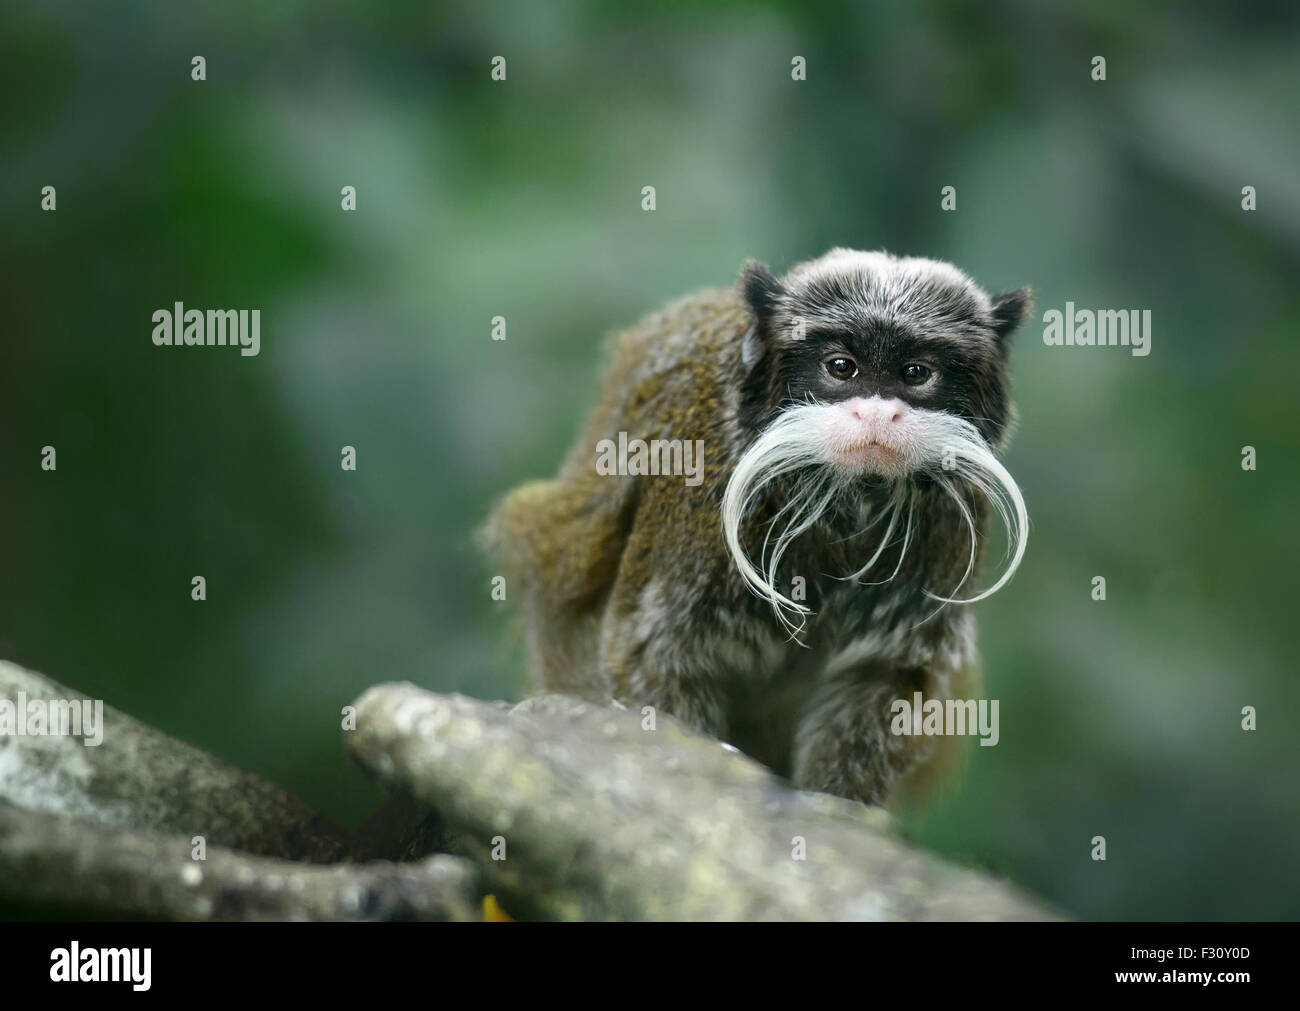 Emperor tamarin monkey with funny mustache - Stock Image